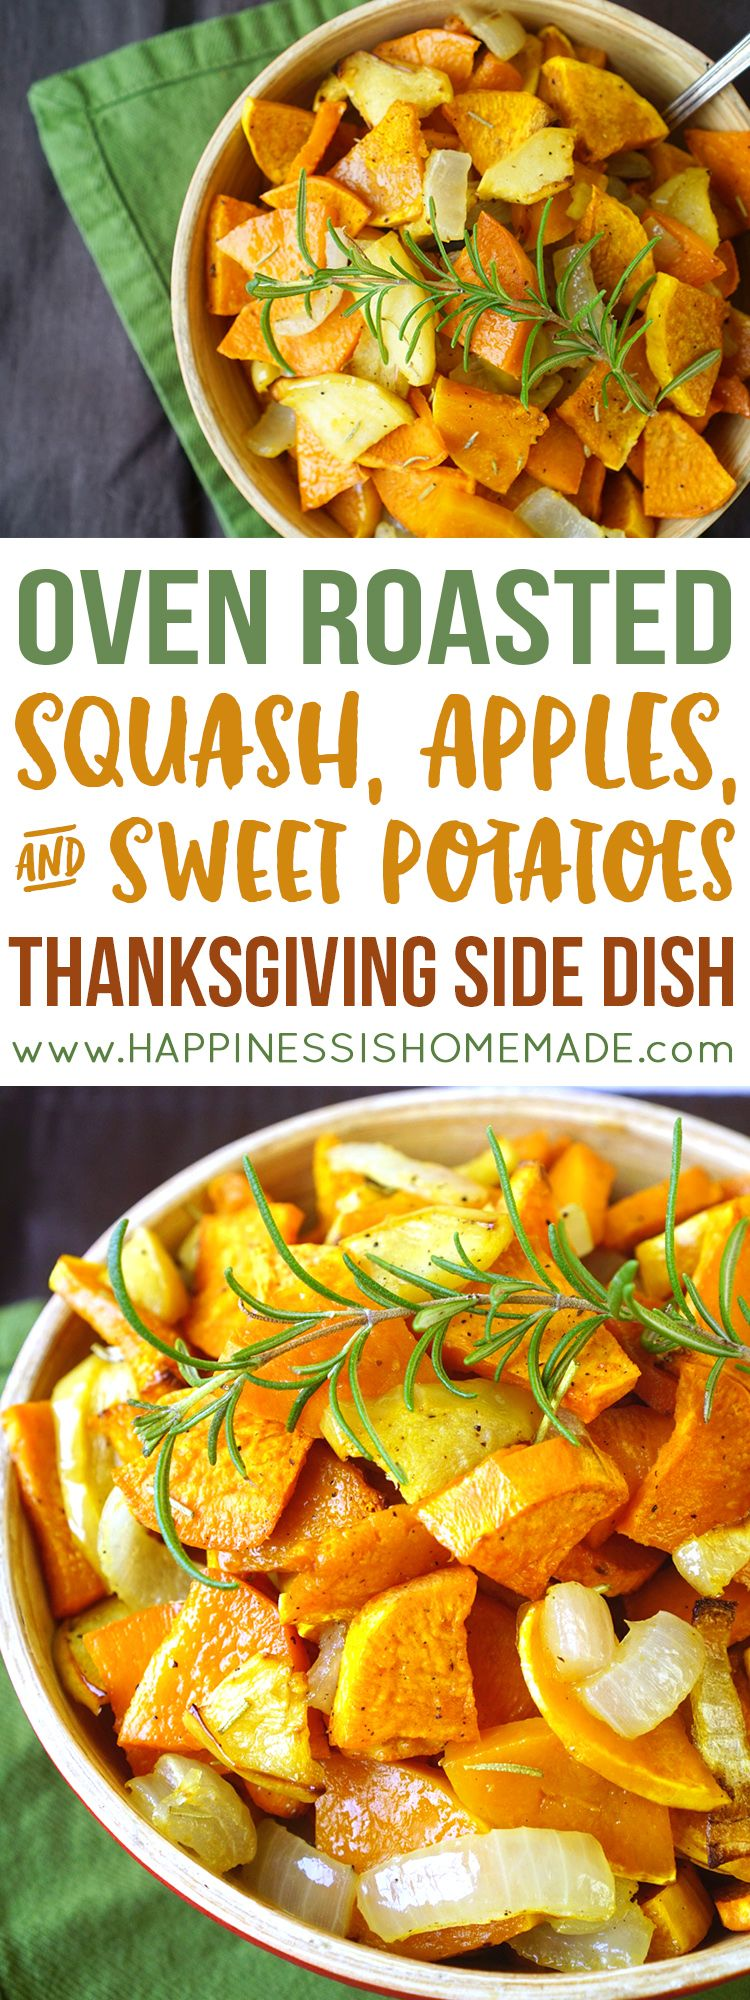 These quick and easy Roasted Sweet Potatoes, Squash, and Apples make a delicious…